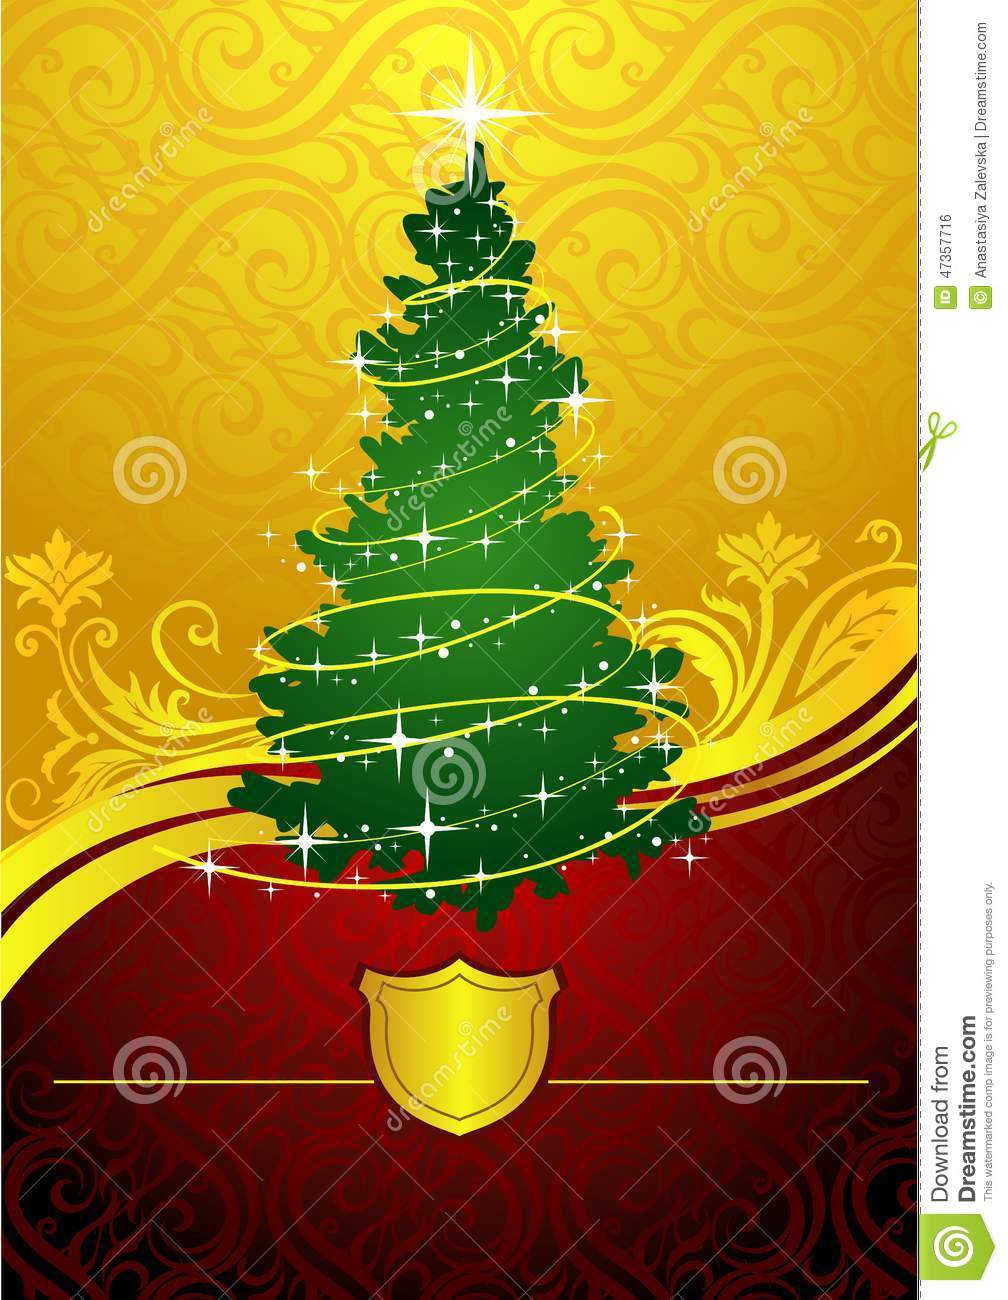 Classic Christmas Tree Stock Vector Illustration Of Abstract 47357716